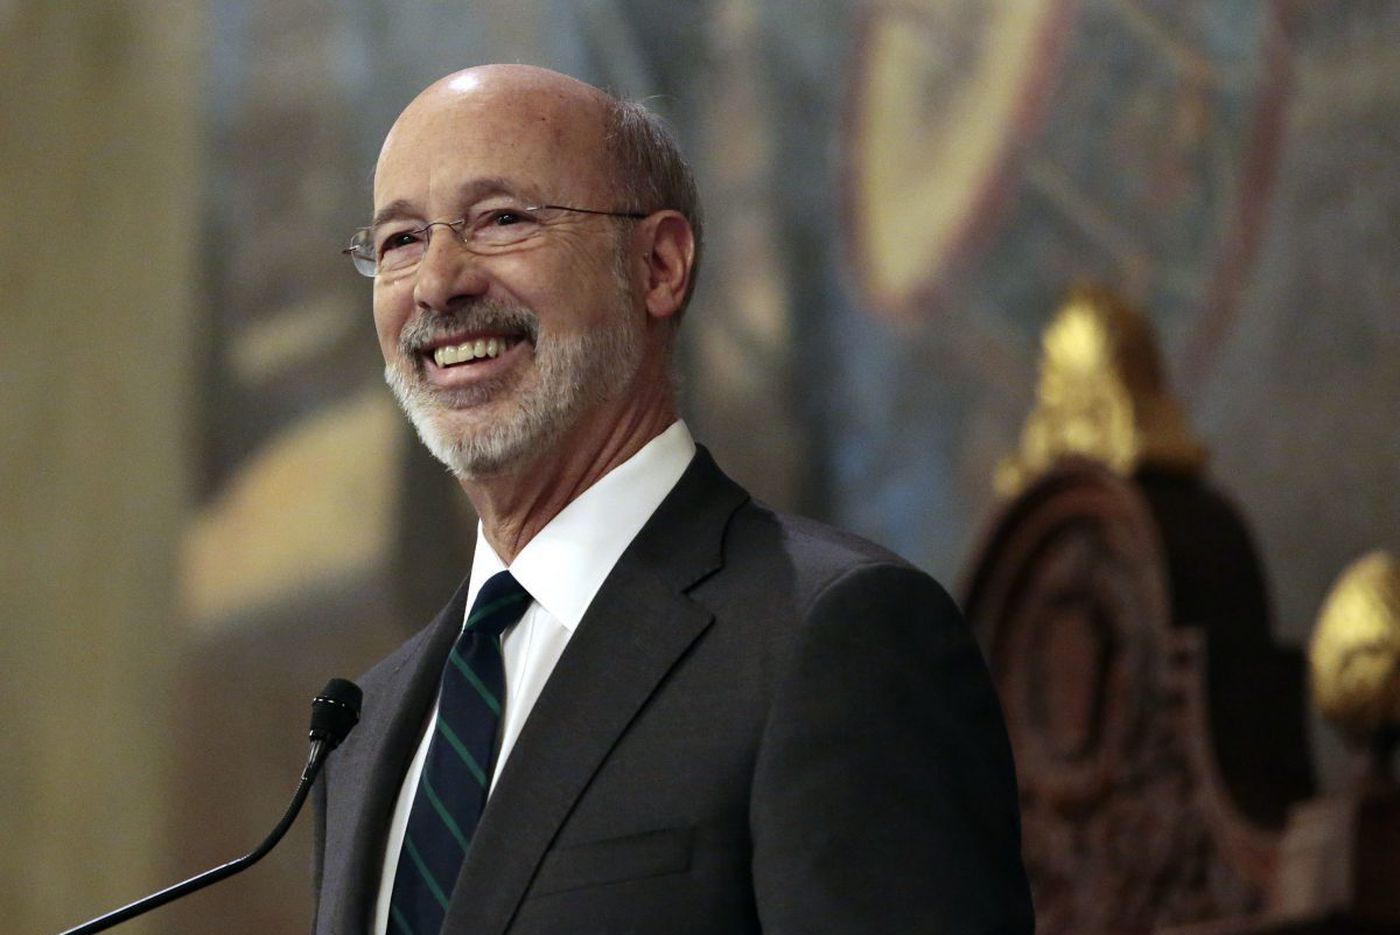 Pa. congressional map lawsuit updates: Gov. Wolf moves to dismiss suit, adds former U.S. solicitor